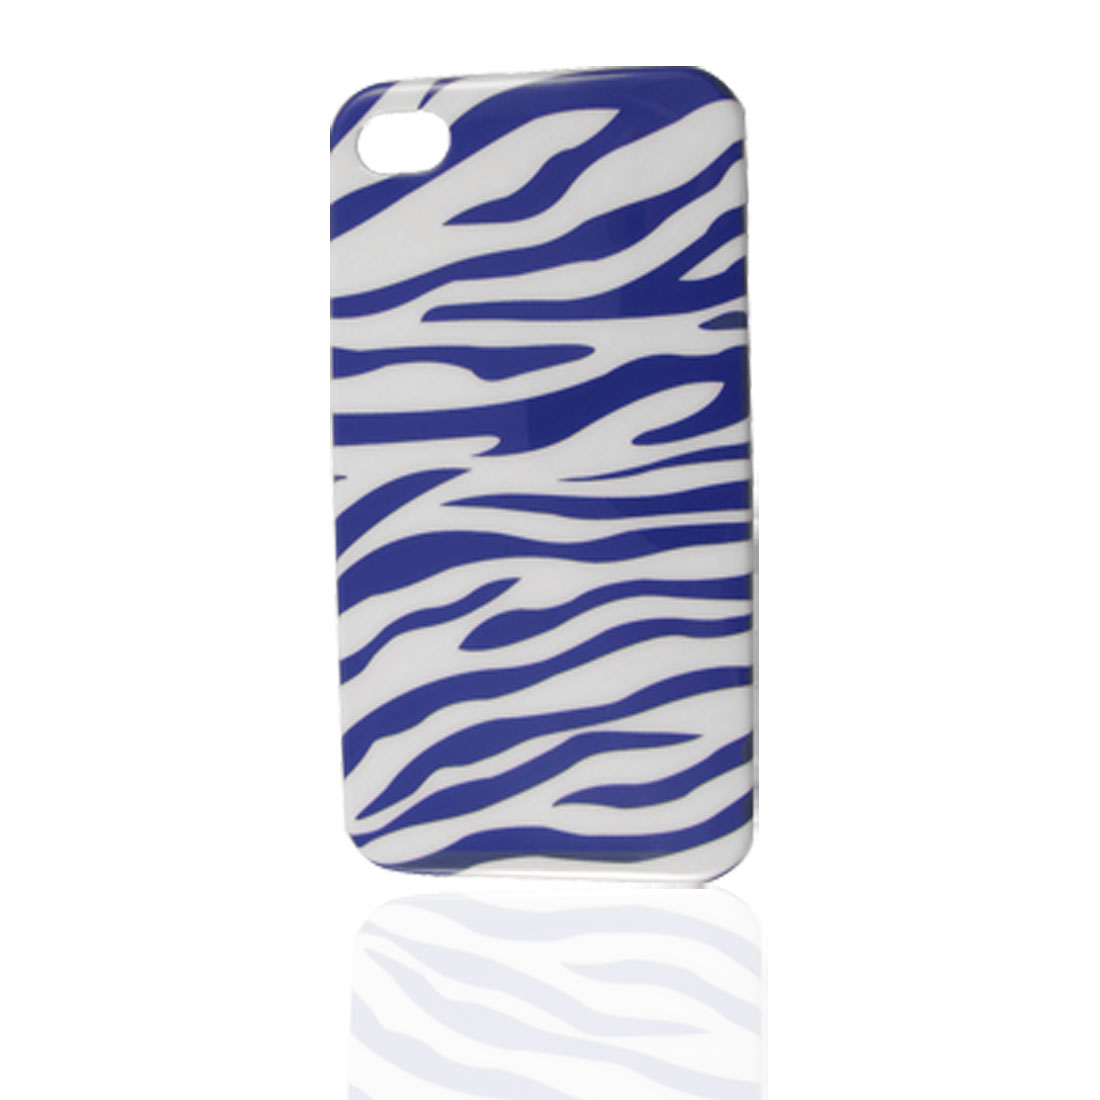 Hard Plastic IMD Zebra Pattern Back Case Guard Shell White Blue for iPhone 4 4G 4GS